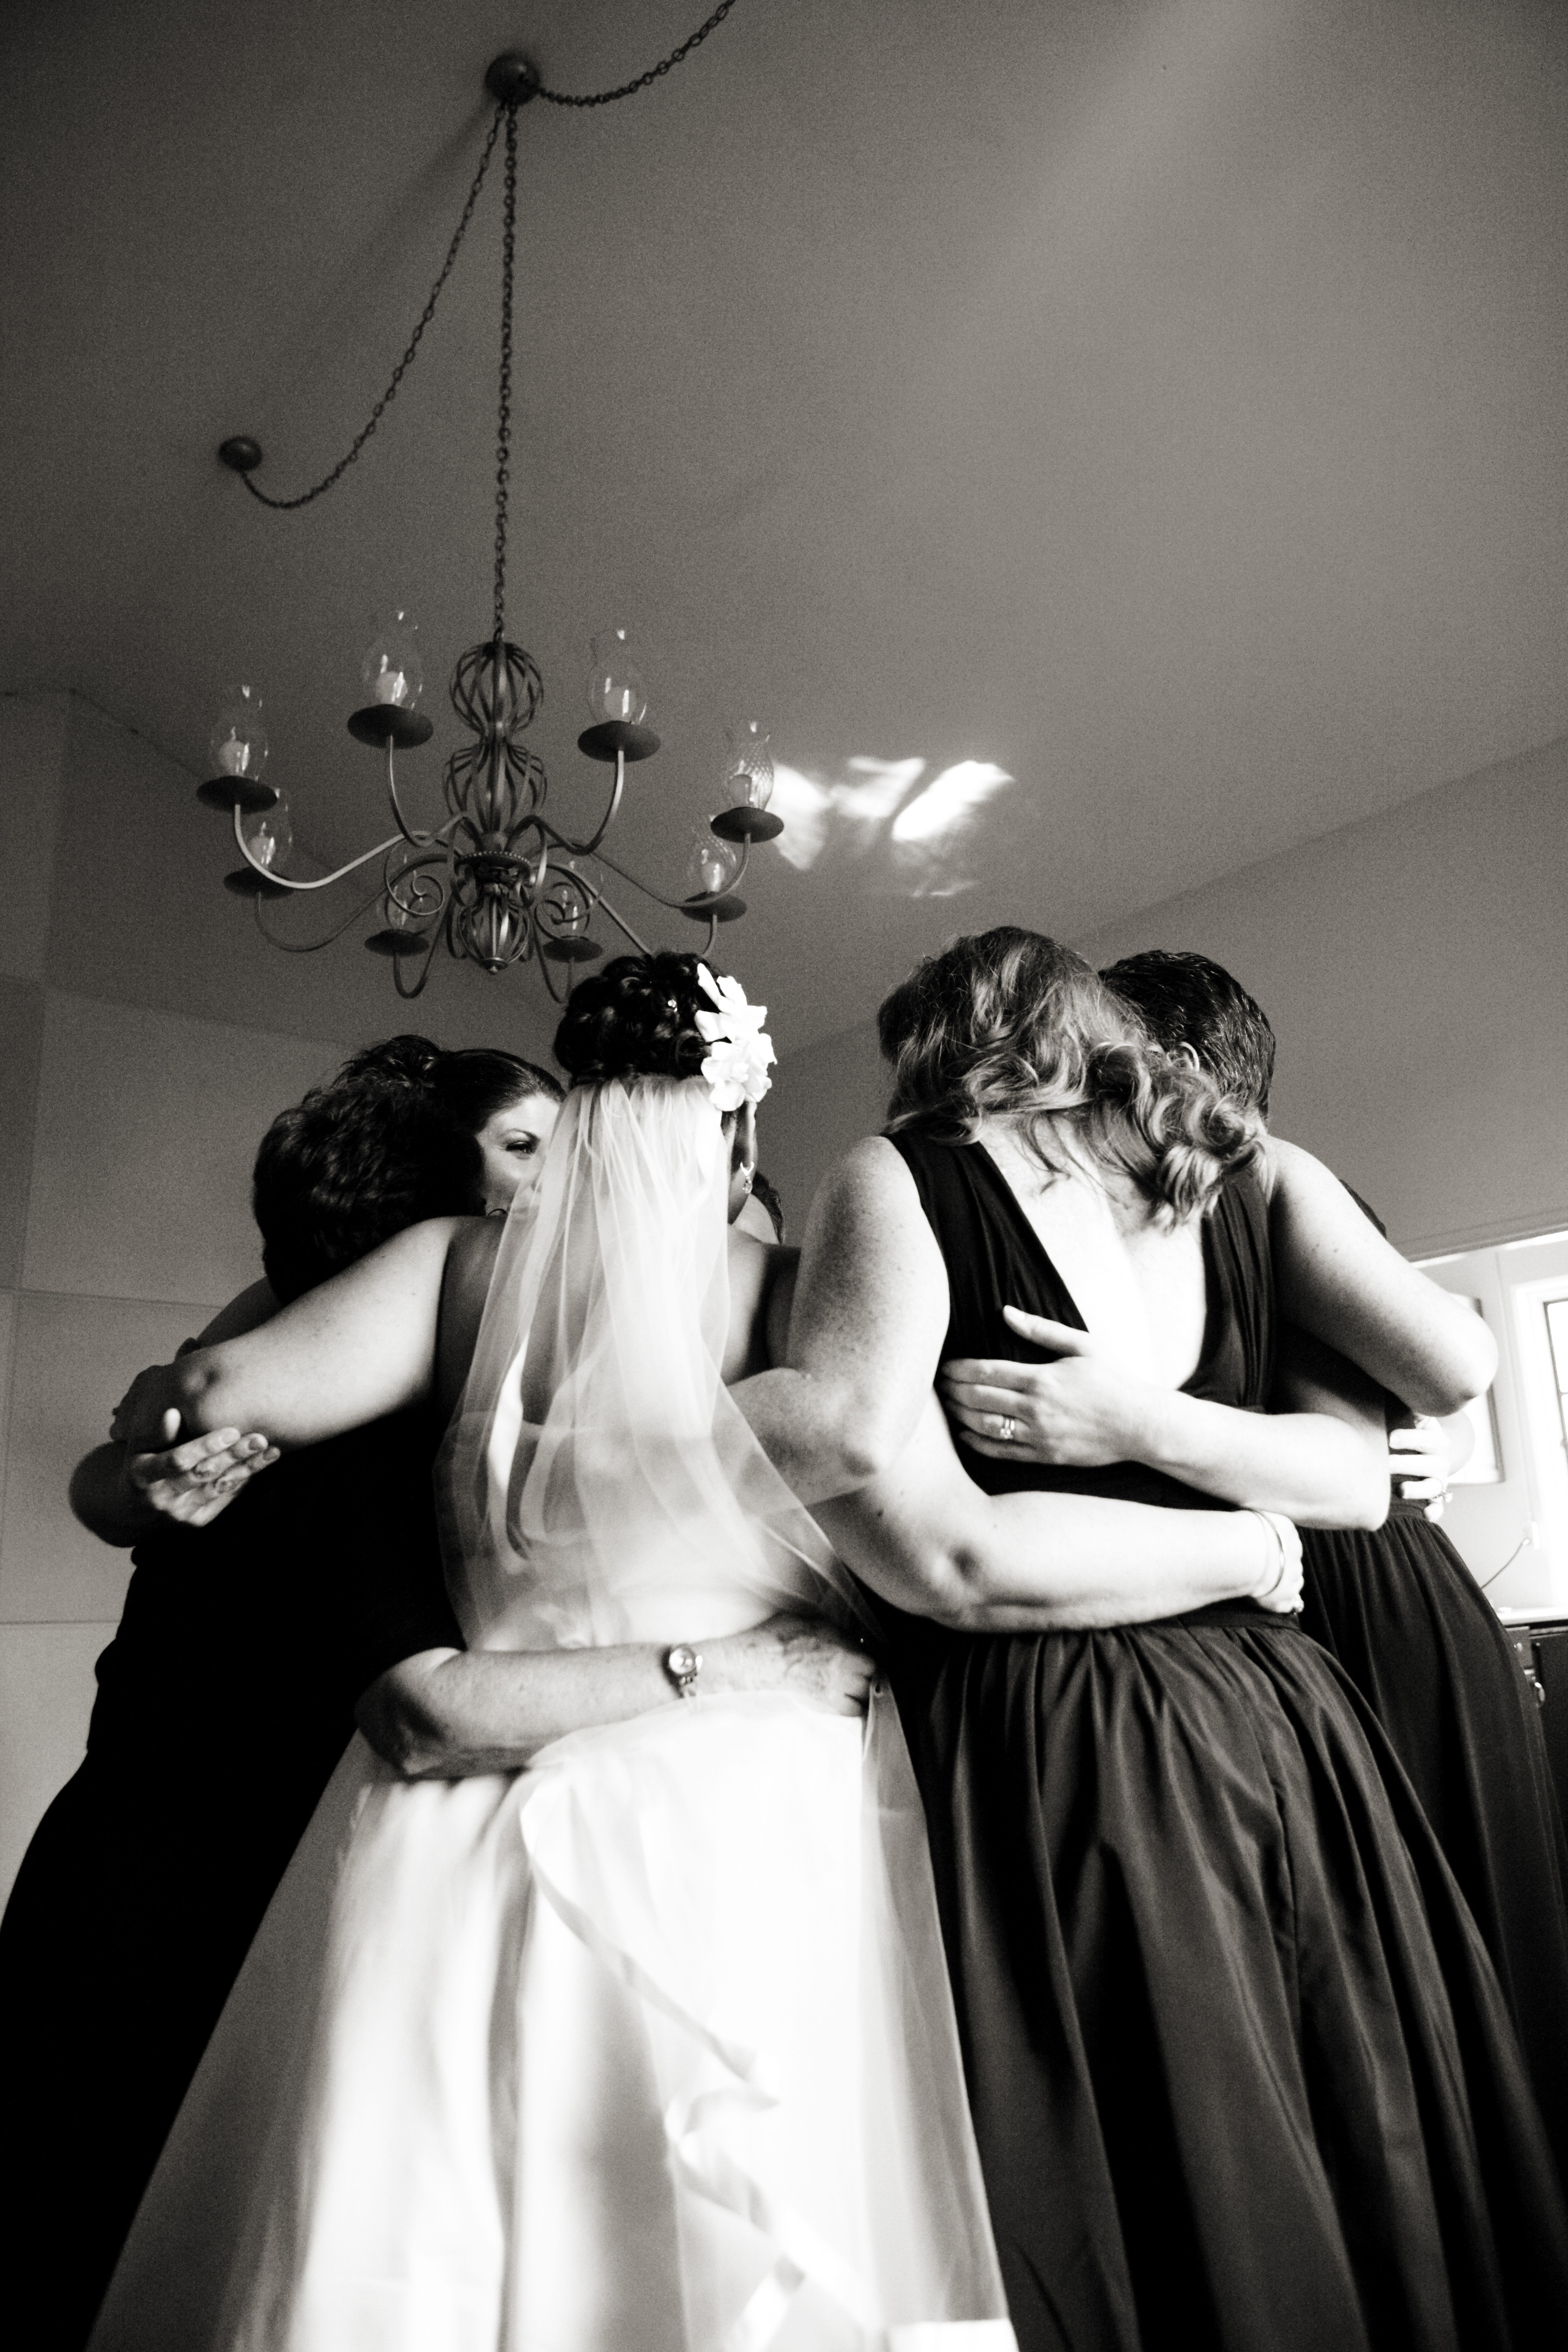 Bridesmaids, Bridesmaids Dresses, Fashion, Bride, Wedding, Group, Hands, Hug, Prayer, Arms, Damion hamilton, Huddle